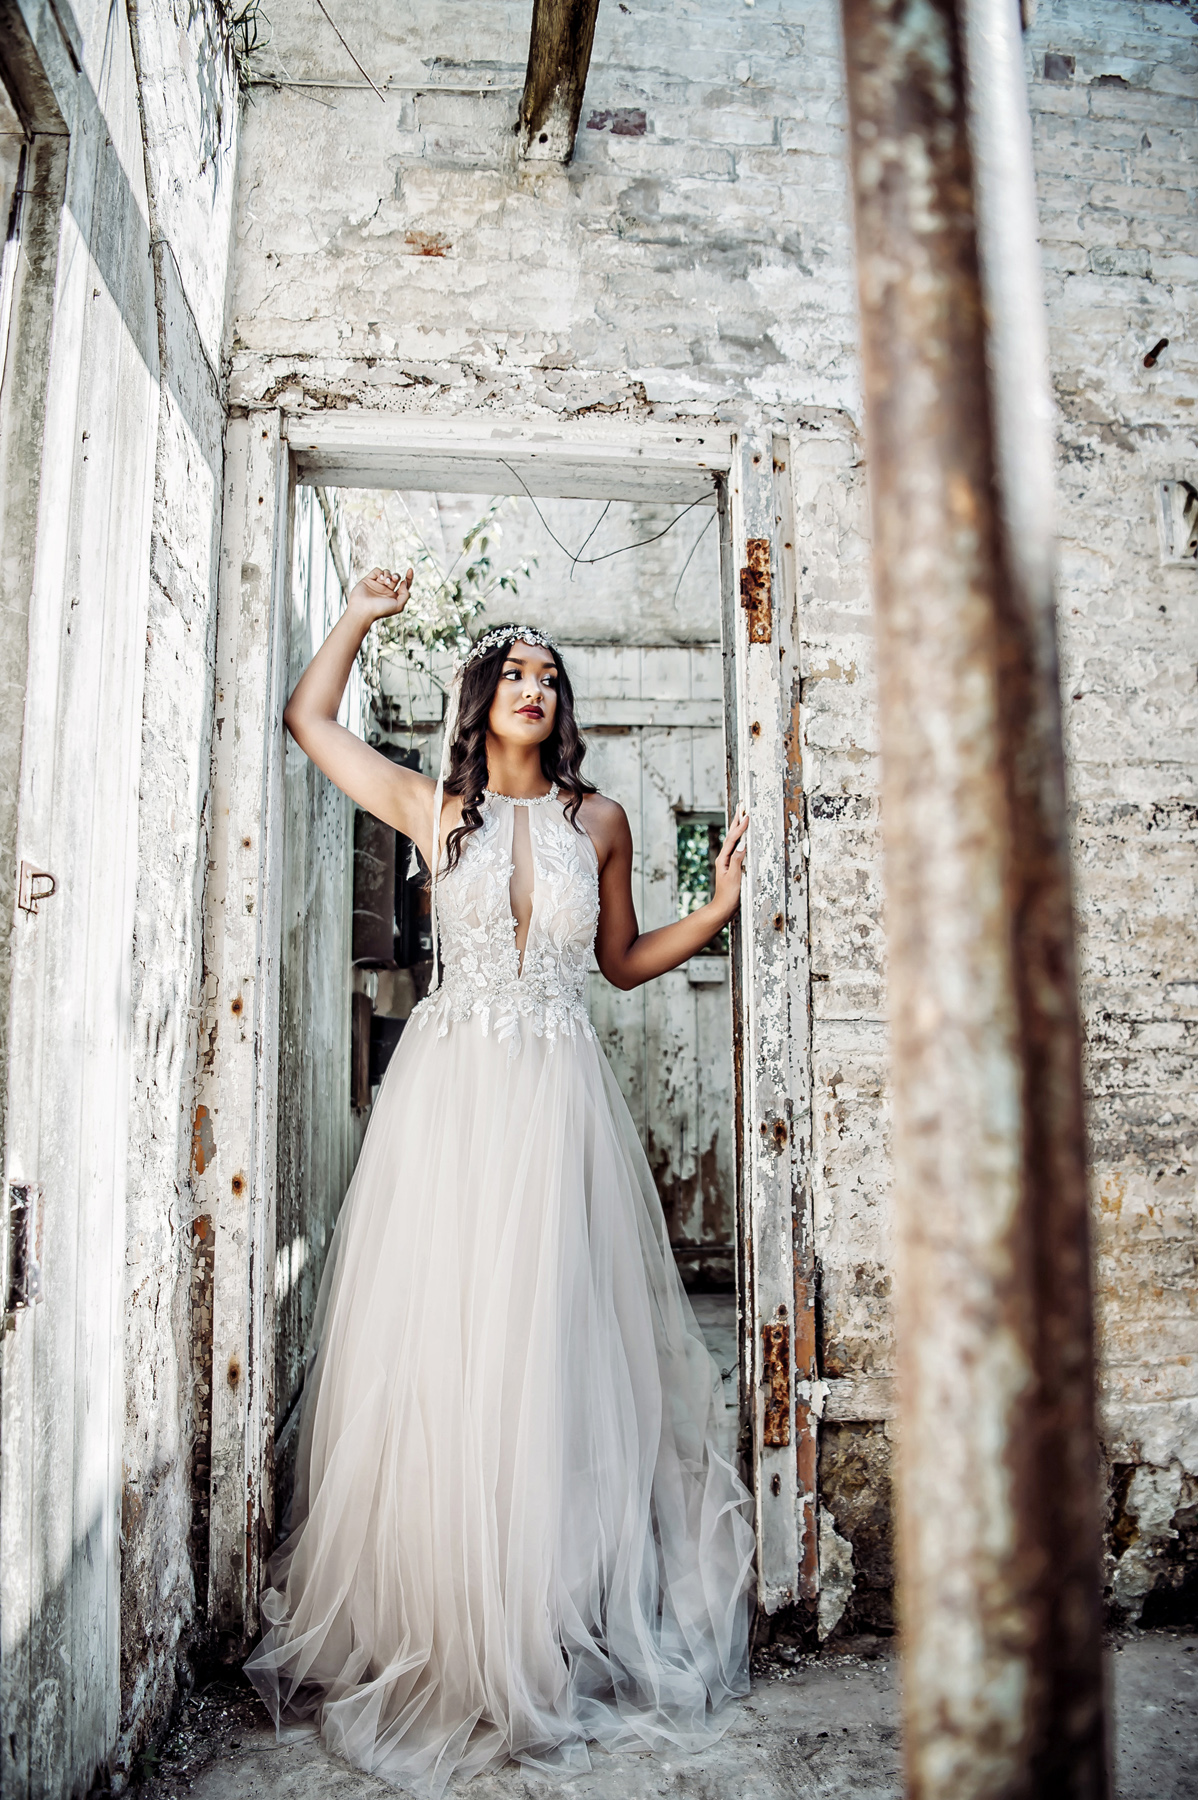 Eddy K Fross Wedding Collections  - Fross Wedding Collections Bridal Boutique, Uckfield, Sussex: Modern, Glamorous, Statement Wedding Dresses